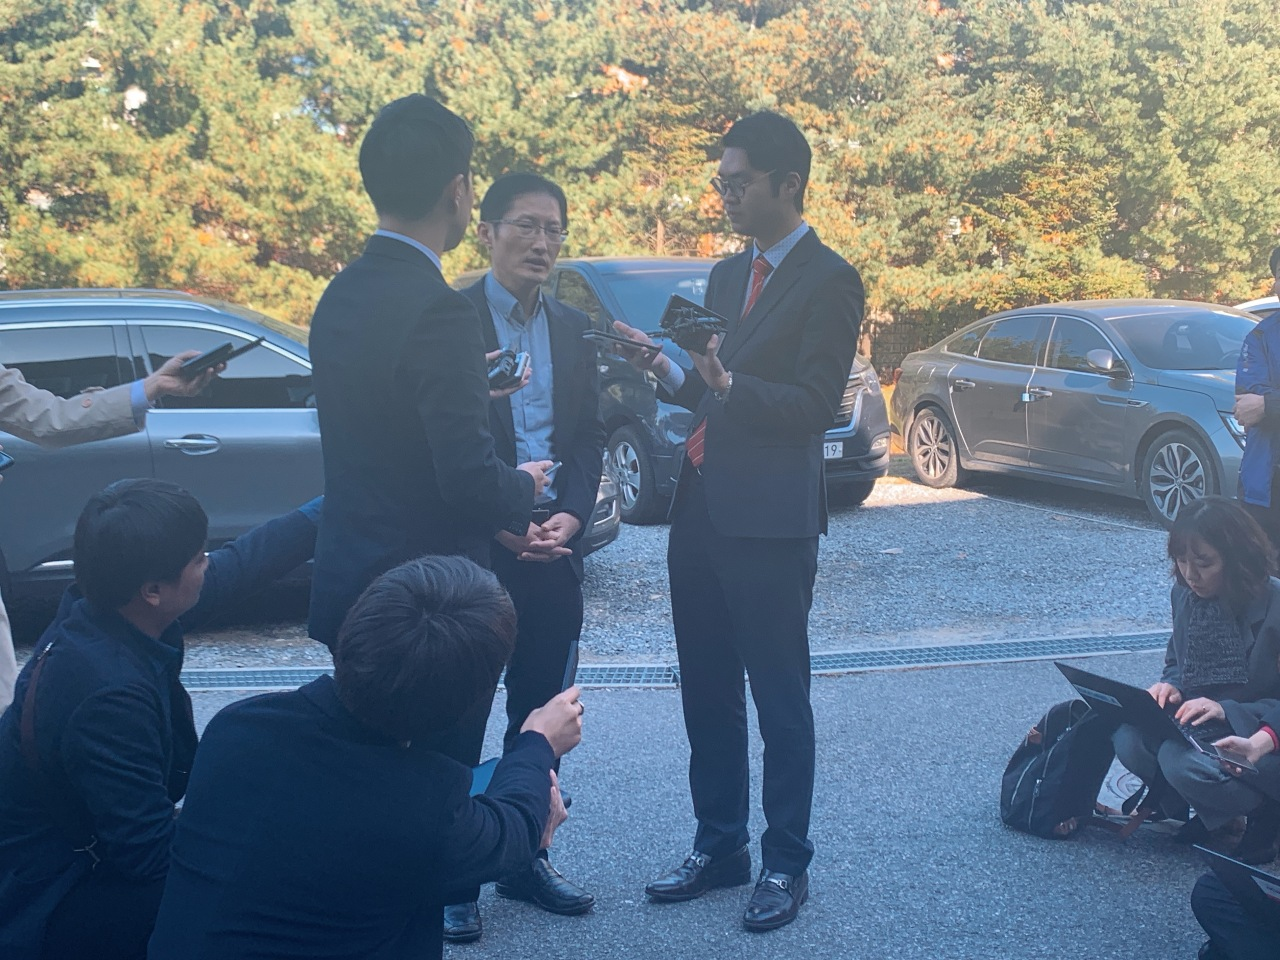 Lawyer Park Joon-young speaks to reporters before his client, convicted of murder, is to undergo forensic hypnosis, Monday at Gyeonggi Nambu Provincial Police Agency. (Kim Arin/The Korea Herald)